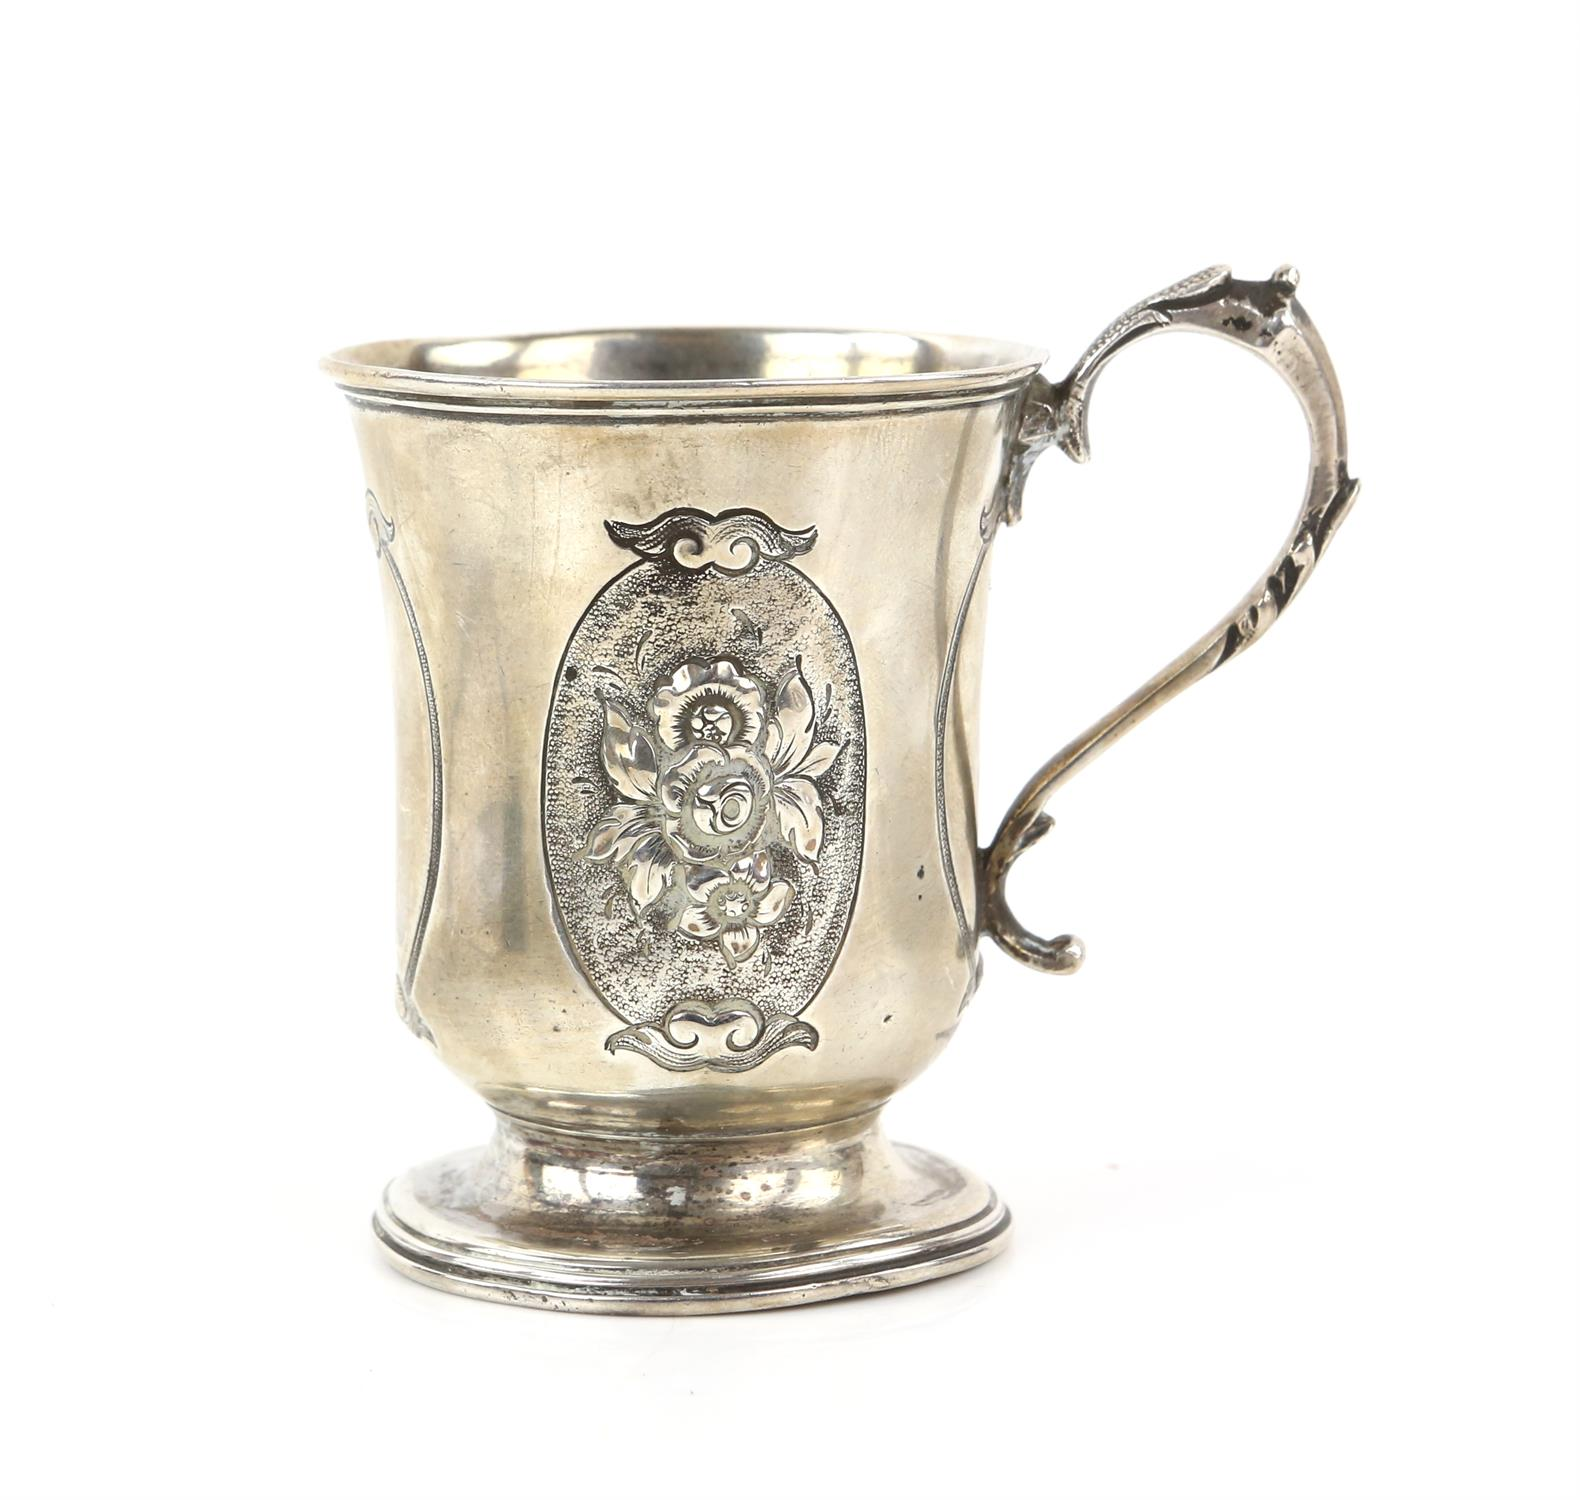 Victorian silver panelled cup/mug the two side panels embossed with a floral design and front panel - Image 3 of 5